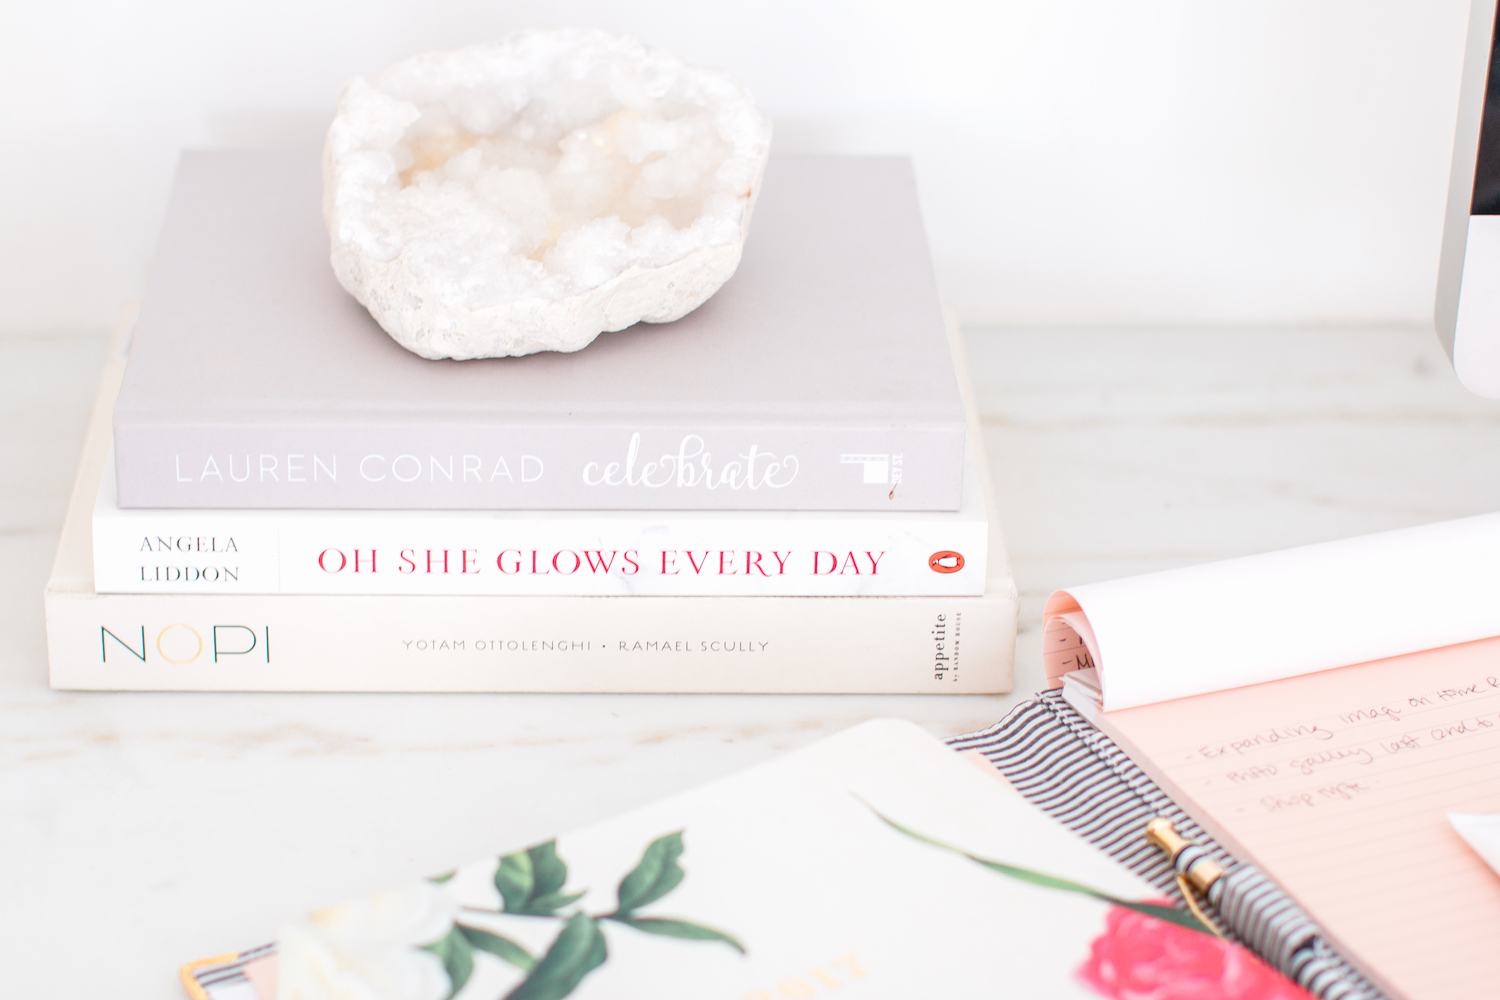 coffee table books and agenda on white marble